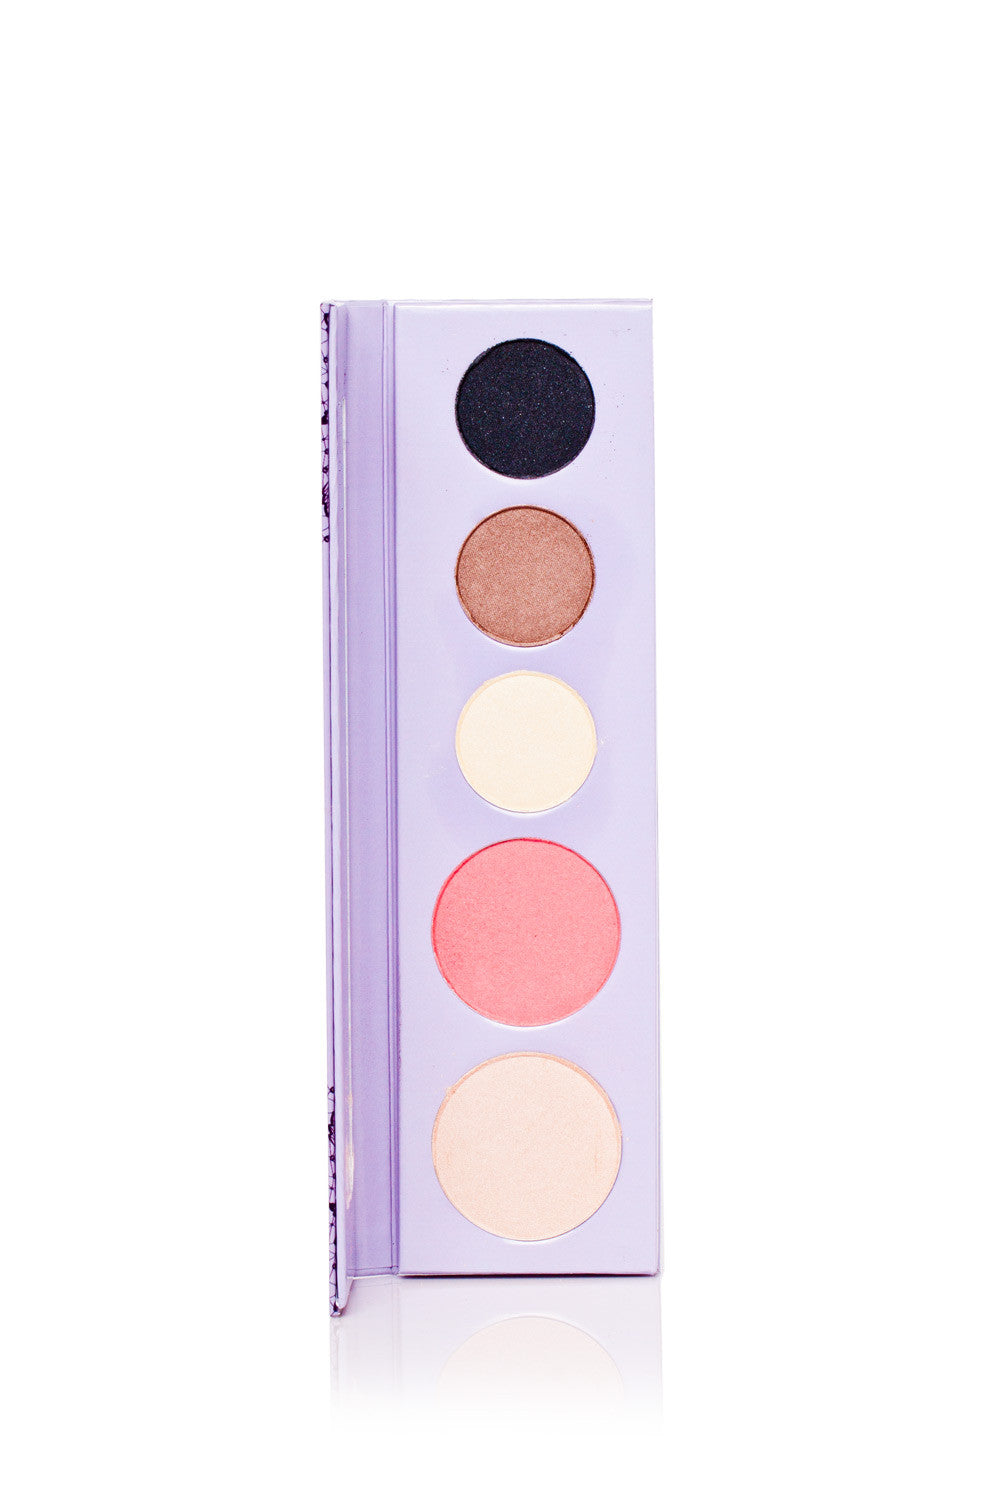 100% Pure Fruit Pigment Punk Princess Palette open